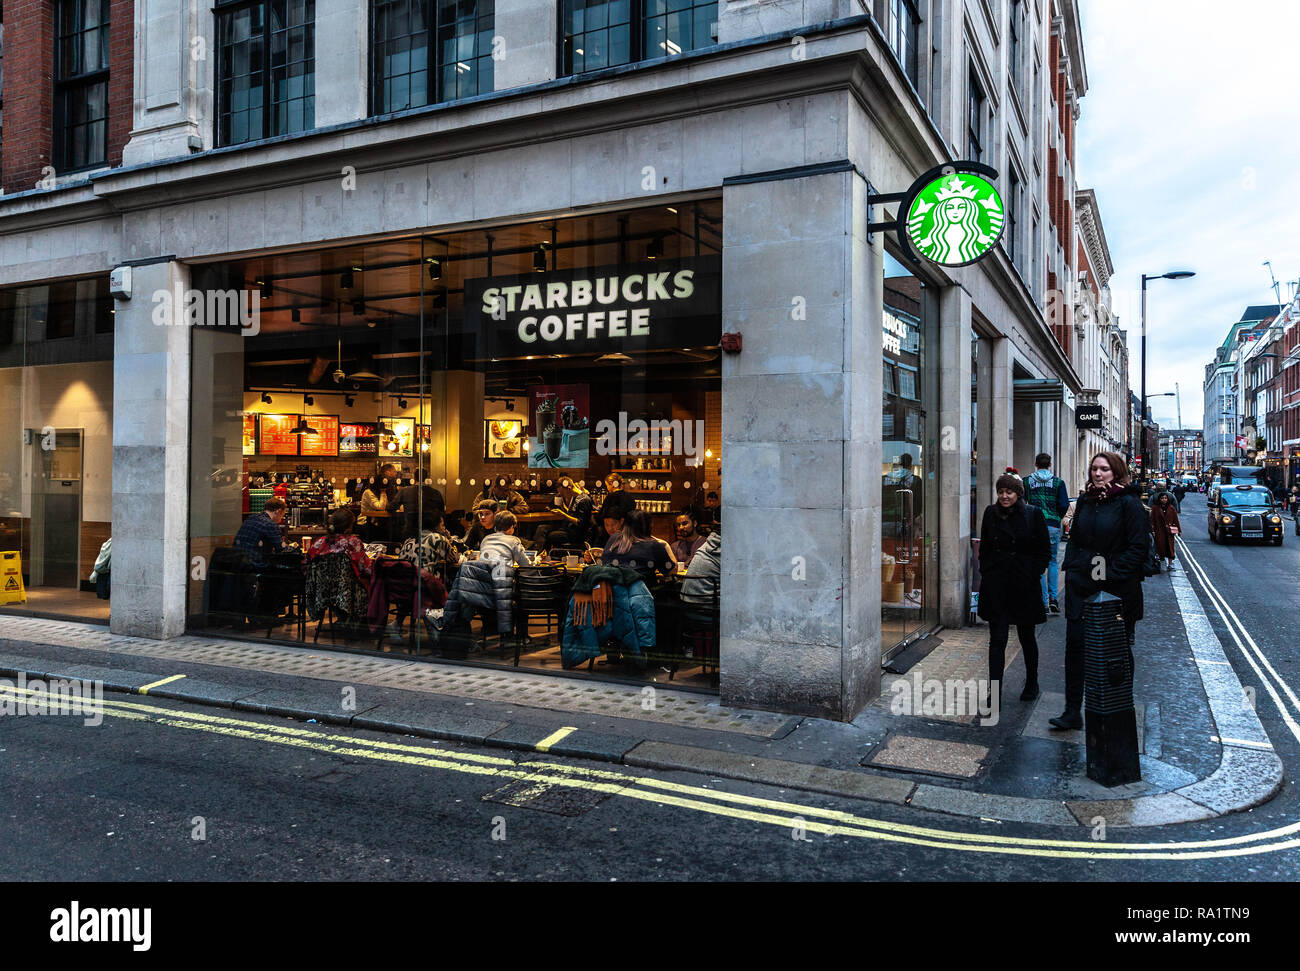 Starbucks Coffee shop on the corner of Wardour and Hollen street, Soho, London, W1, England, UK. - Stock Image